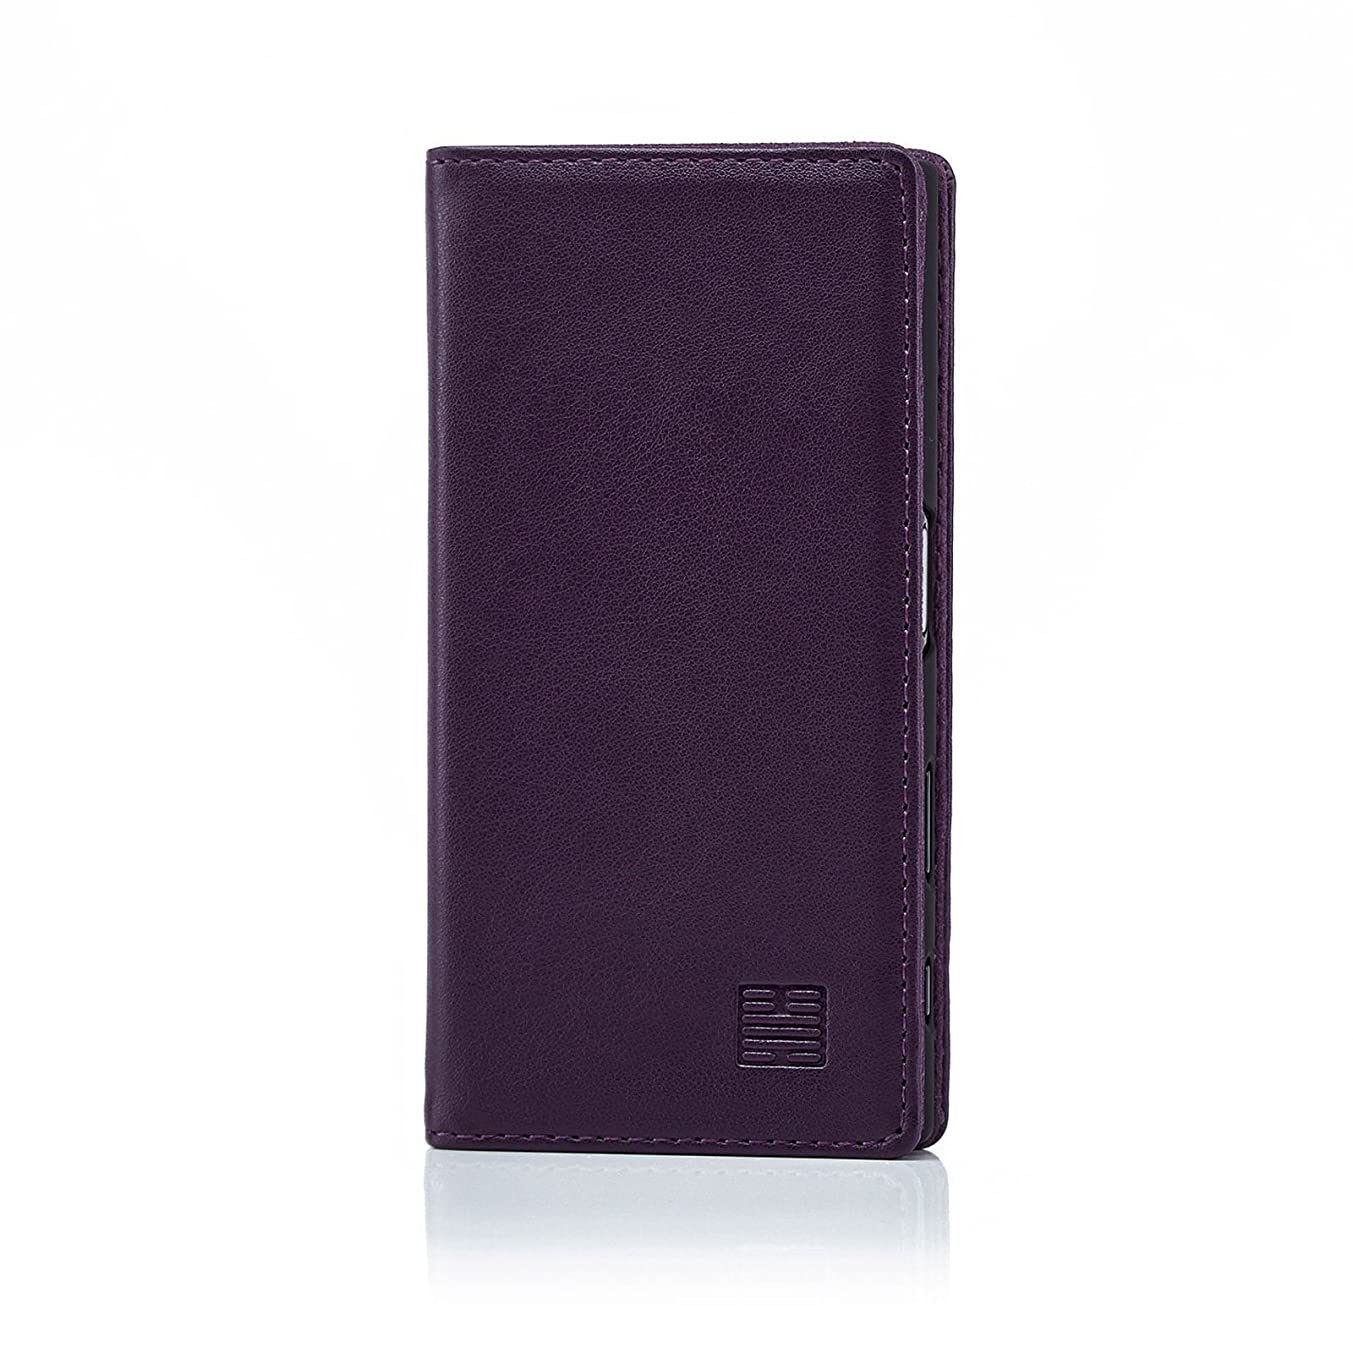 32nd Classic Series - Real Leather Book Wallet Case Cover for Sony Xperia X Compact, Real Leather Design with Card Slot, Magnetic Closure and Built in Stand - Aubergine